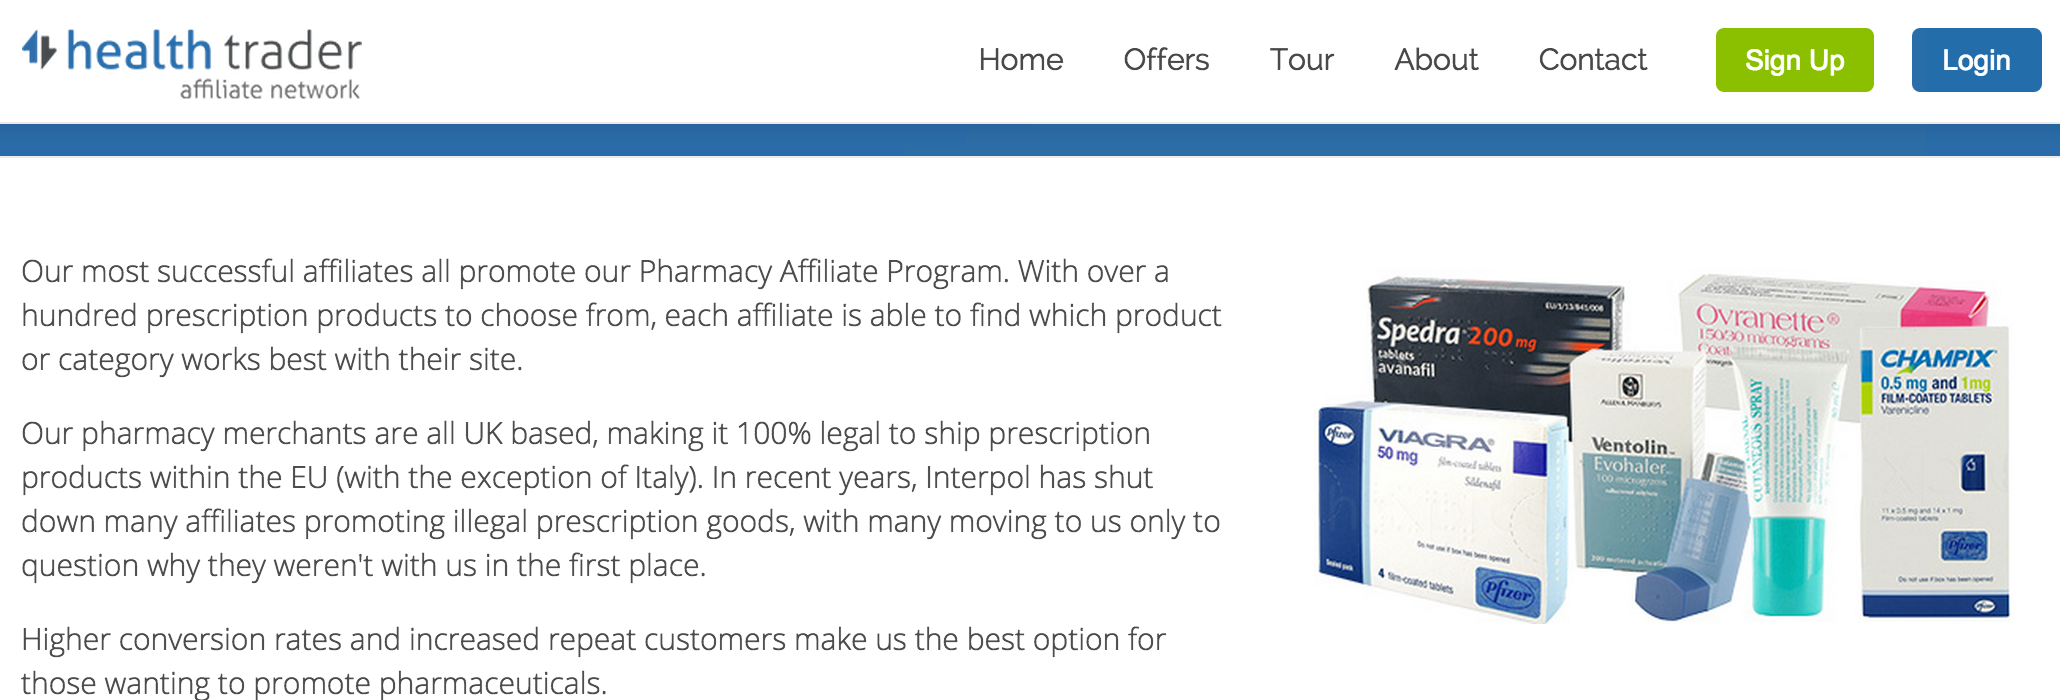 Health Trader - Pharmacy Affiliate Programs